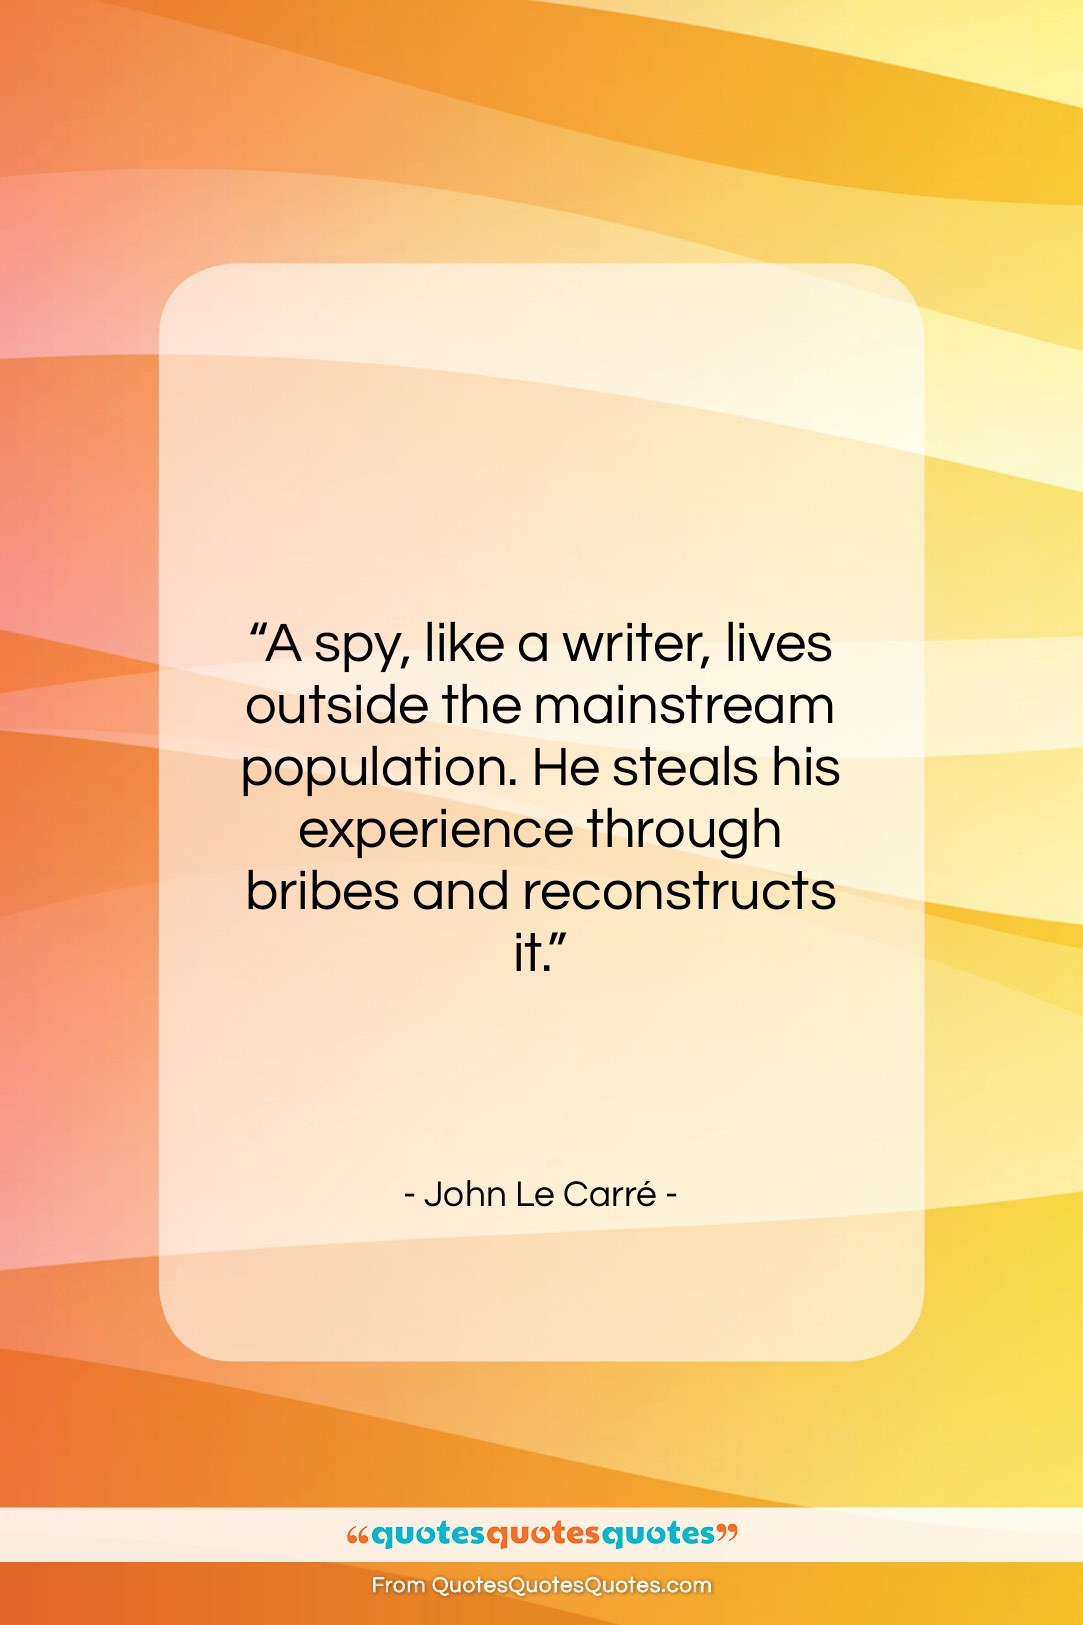 """John Le Carré quote: """"A spy, like a writer, lives outside…""""- at QuotesQuotesQuotes.com"""